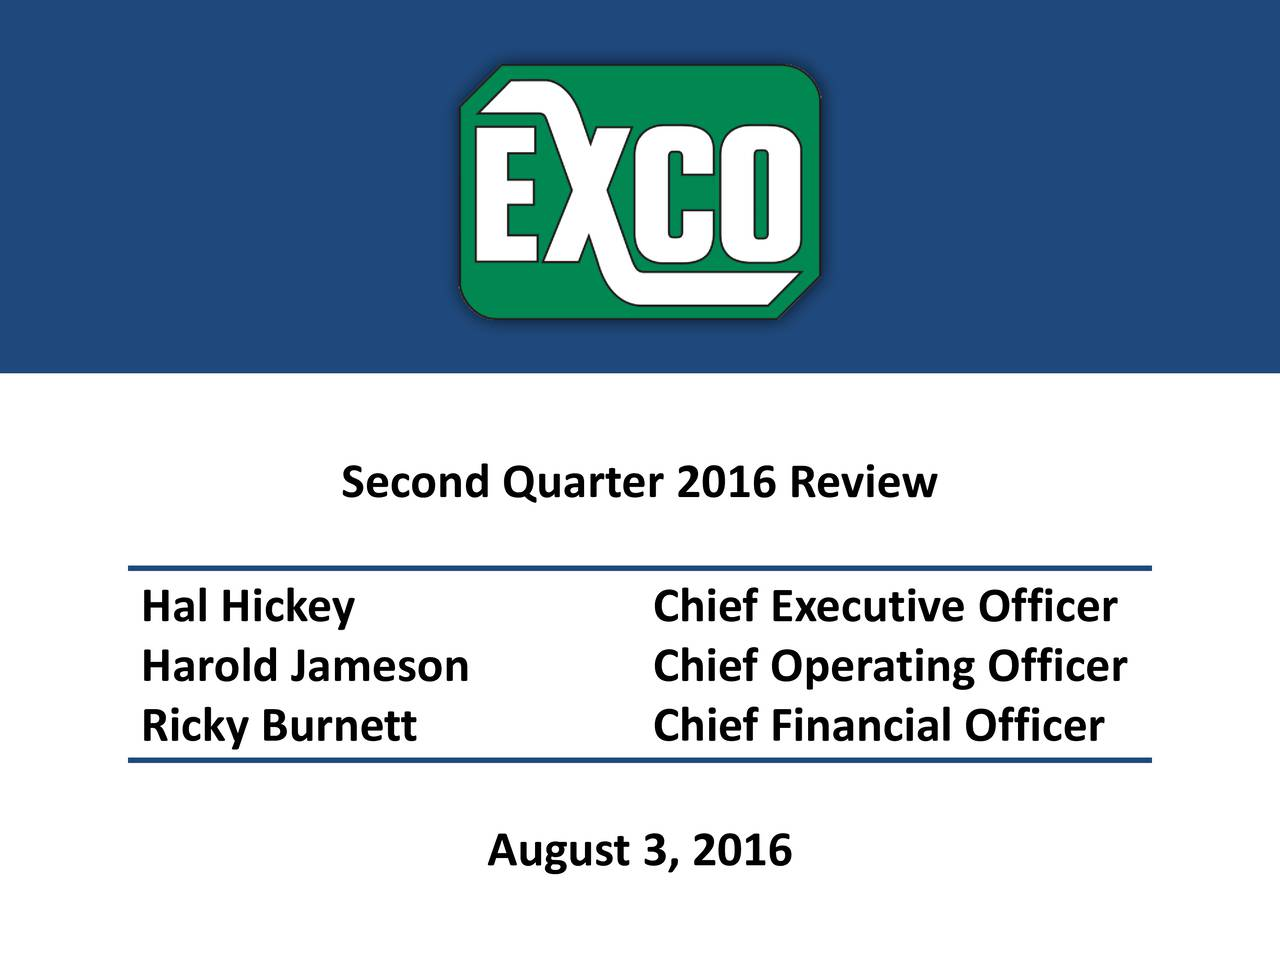 Hal Hickey Chief Executive Officer Harold Jameson Chief Operating Officer Ricky Burnett Chief Financial Officer August 3, 2016